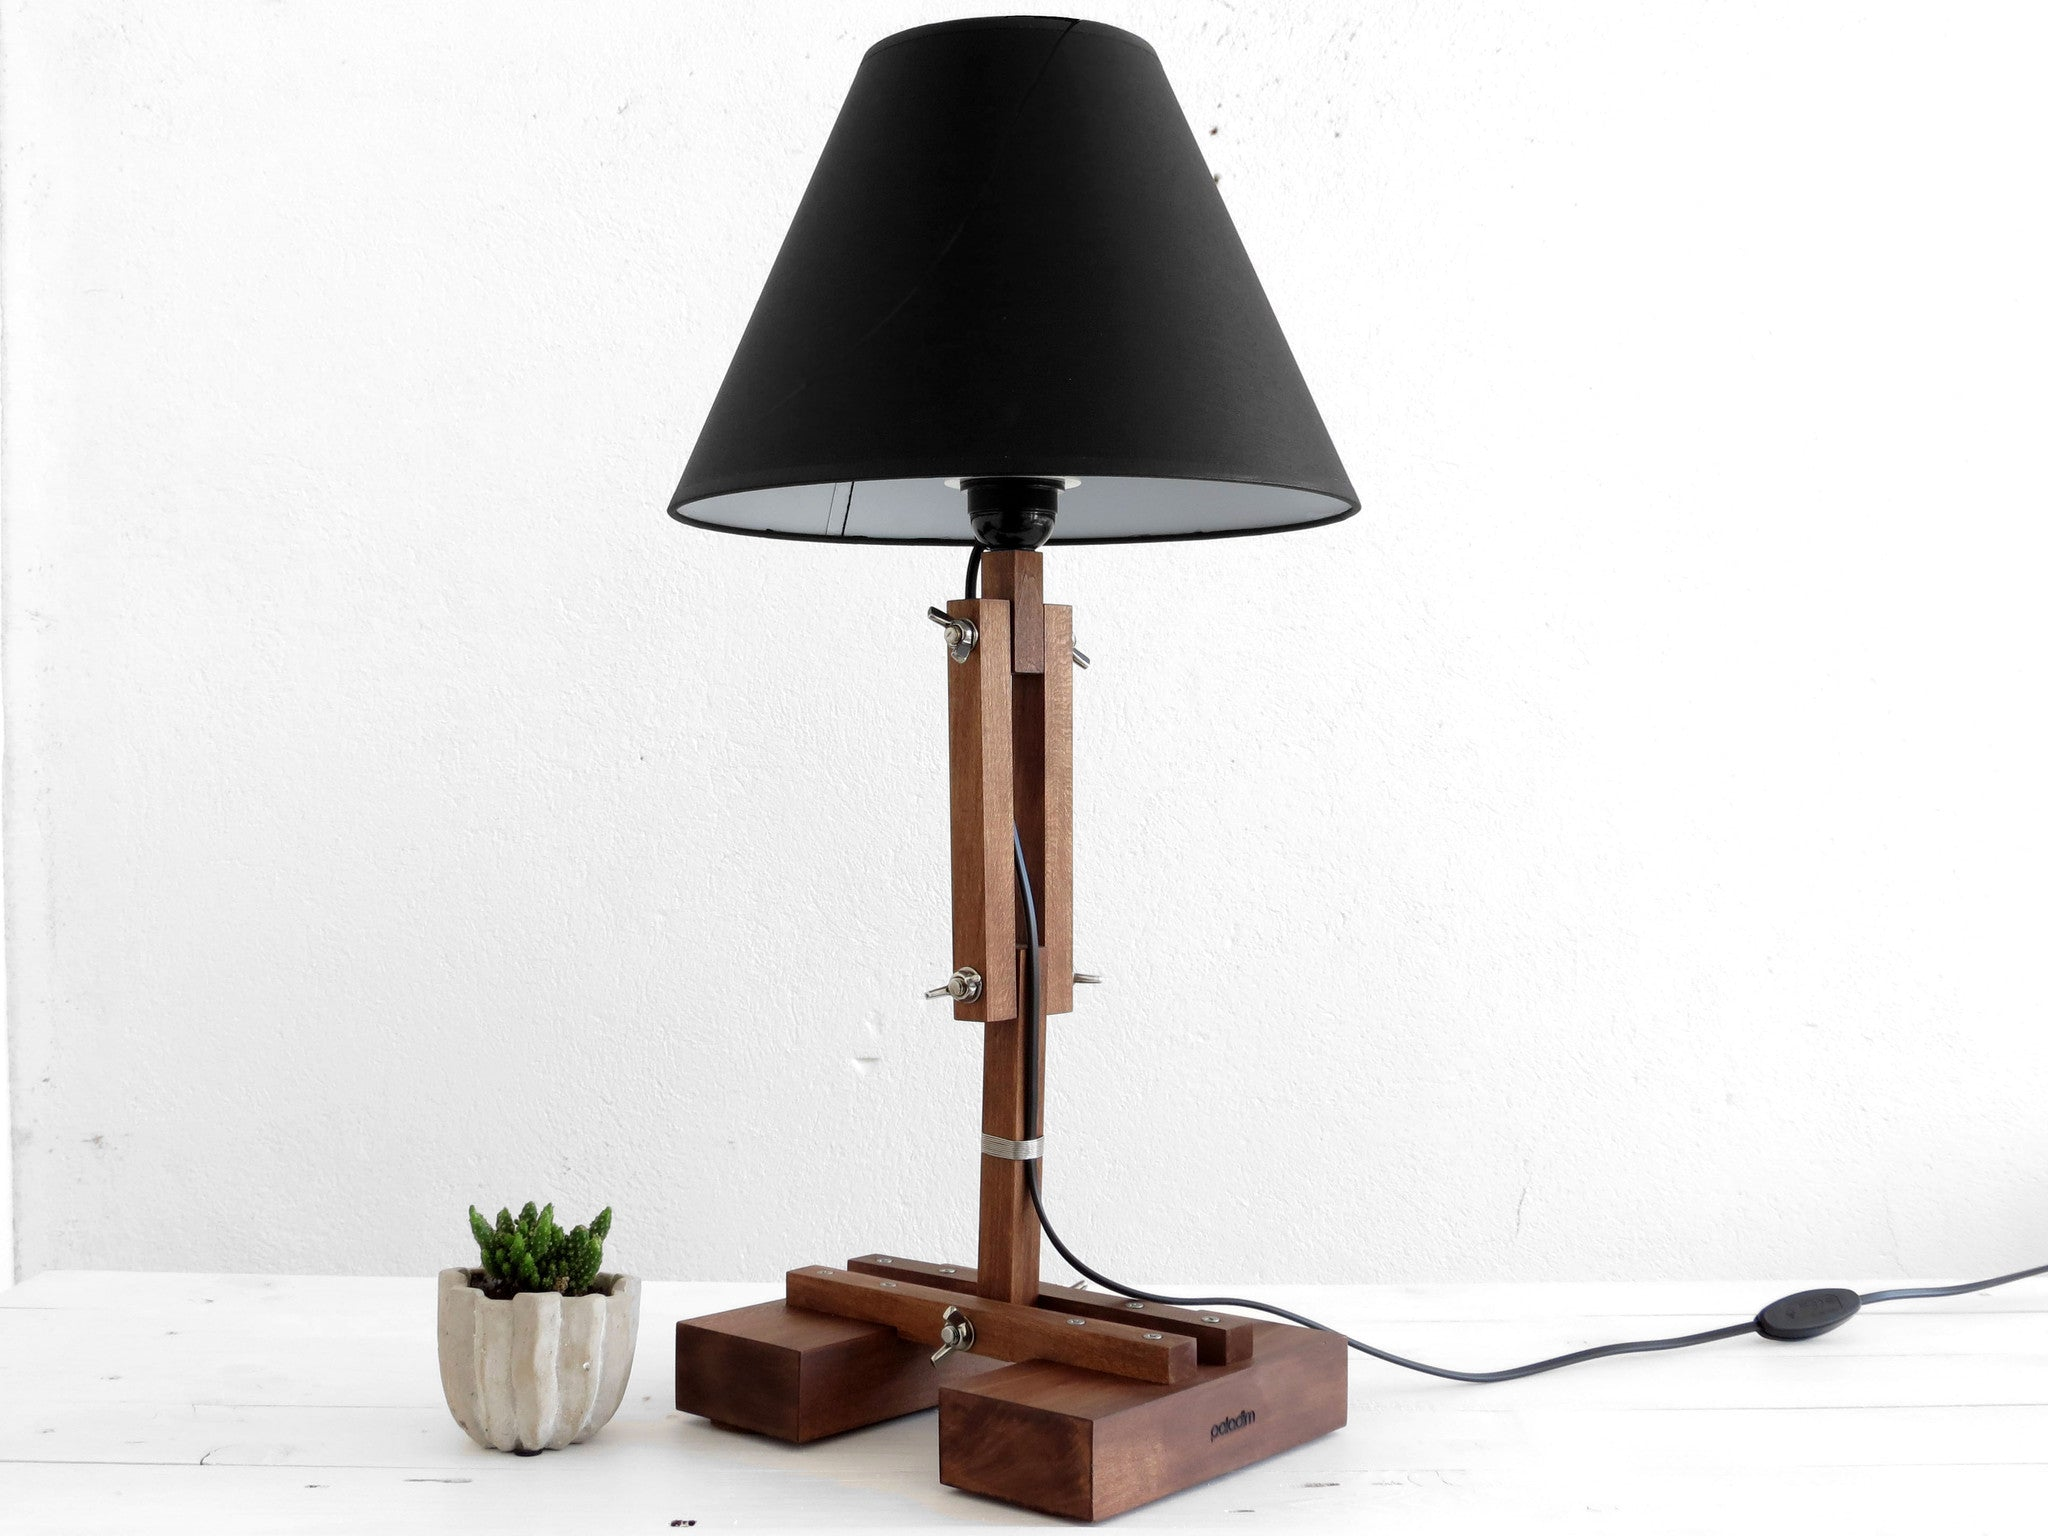 Big plat wooden table lamp paladim handmade big plat wooden table lamp paladim handmade geotapseo Choice Image